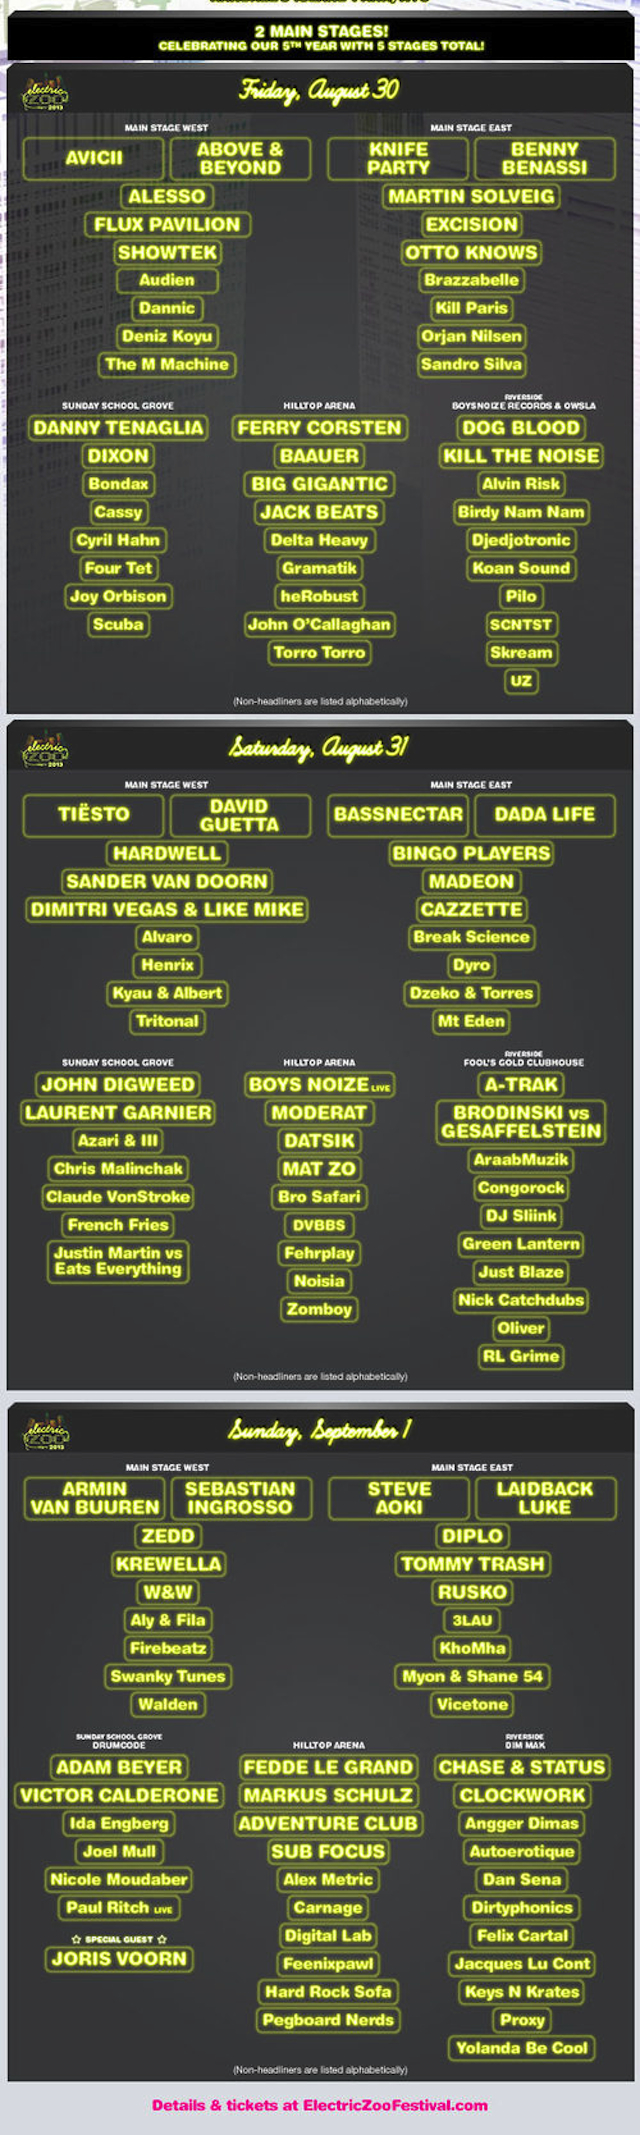 electric_zoo_2013_lineup2